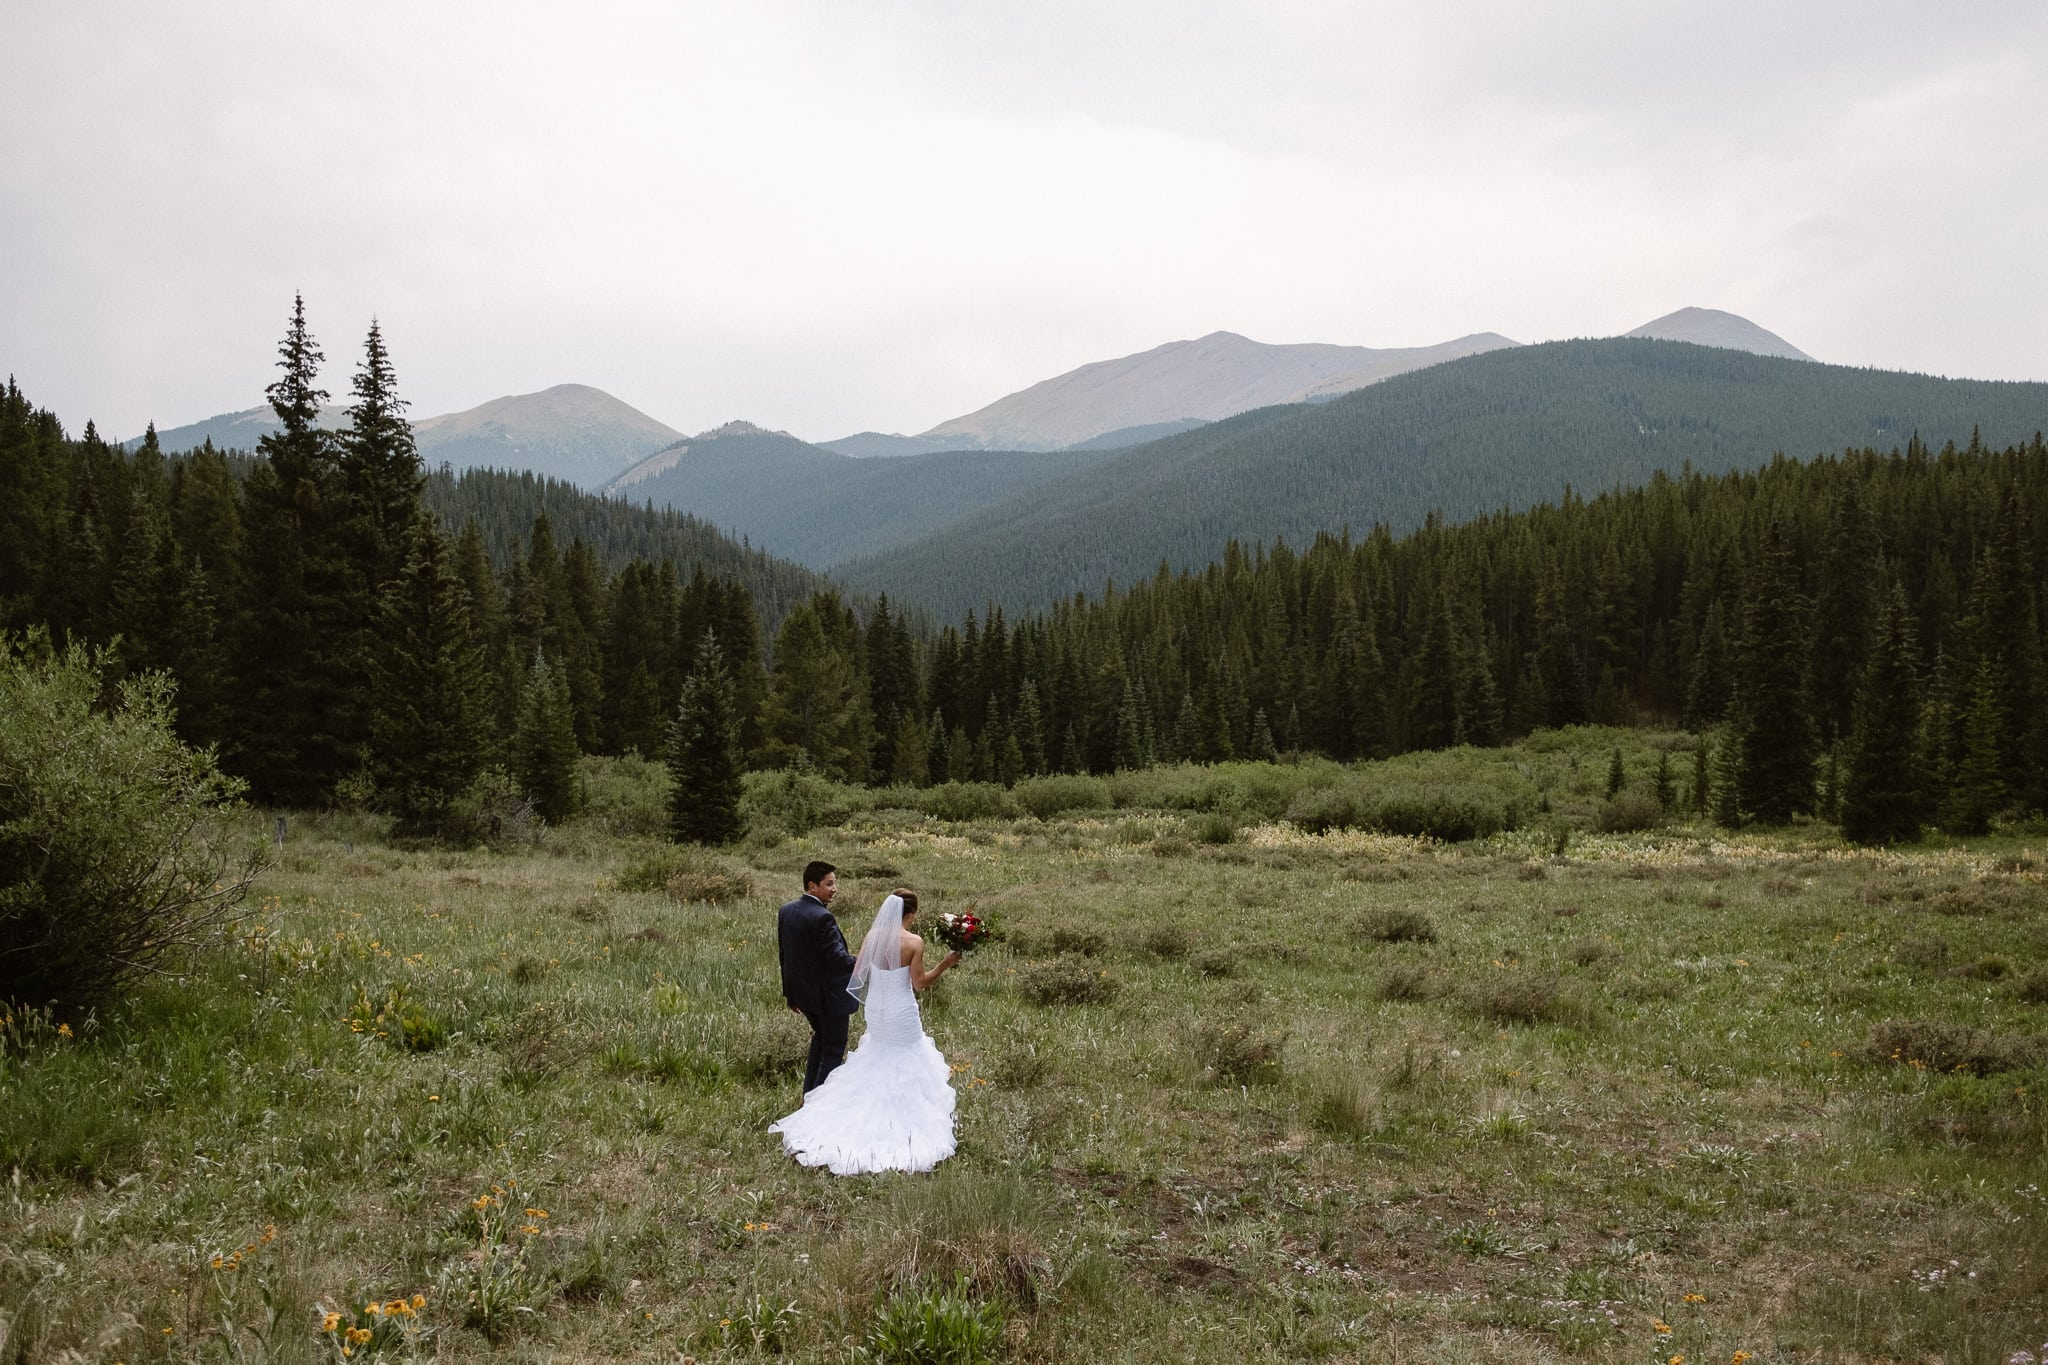 Lodge at Breckenridge Wedding Photographer, Colorado mountain wedding photographer, intimate wedding, bride and groom walking through alpine meadow, bride and groom portrait, wedding photos